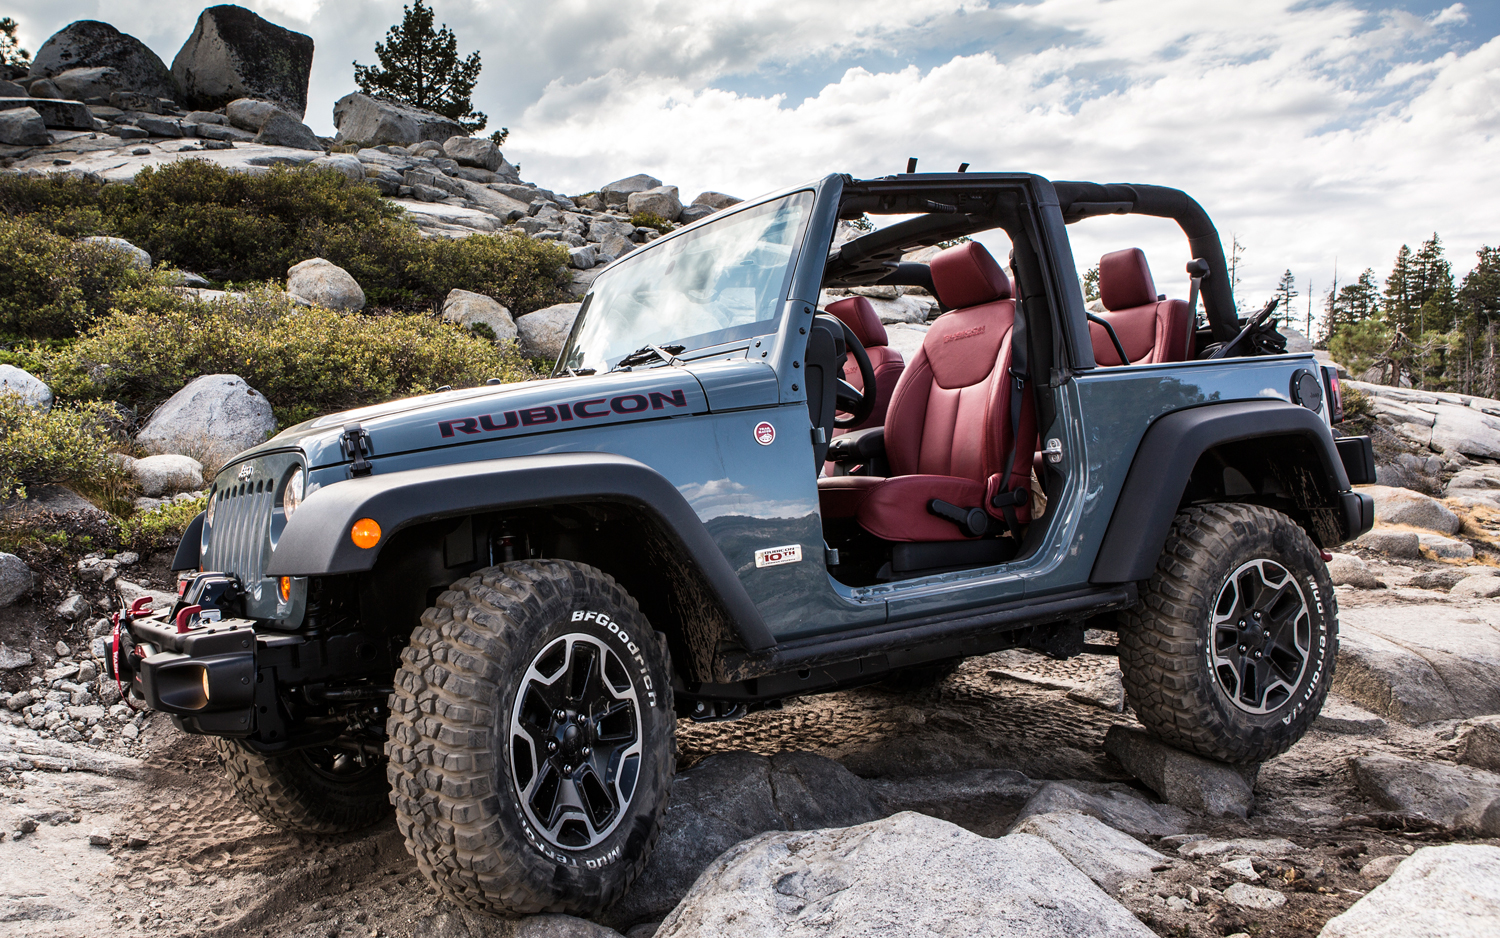 Jeep Wrangler Rubicon #23